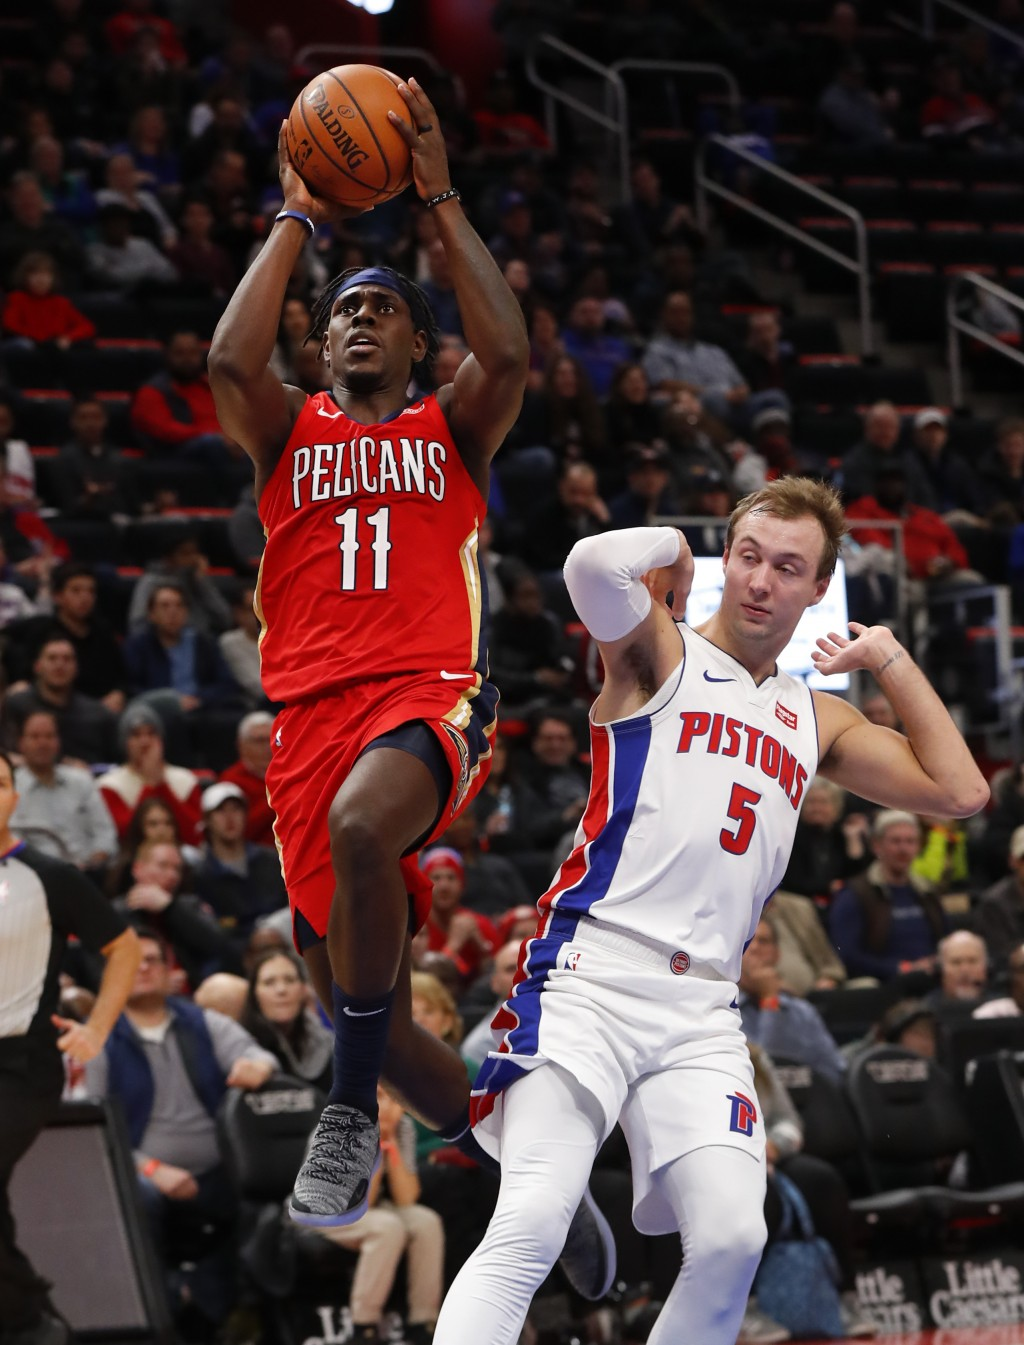 New Orleans Pelicans guard Jrue Holiday (11) drives against Detroit Pistons guard Luke Kennard (5) in the second half of an NBA basketball game in Det